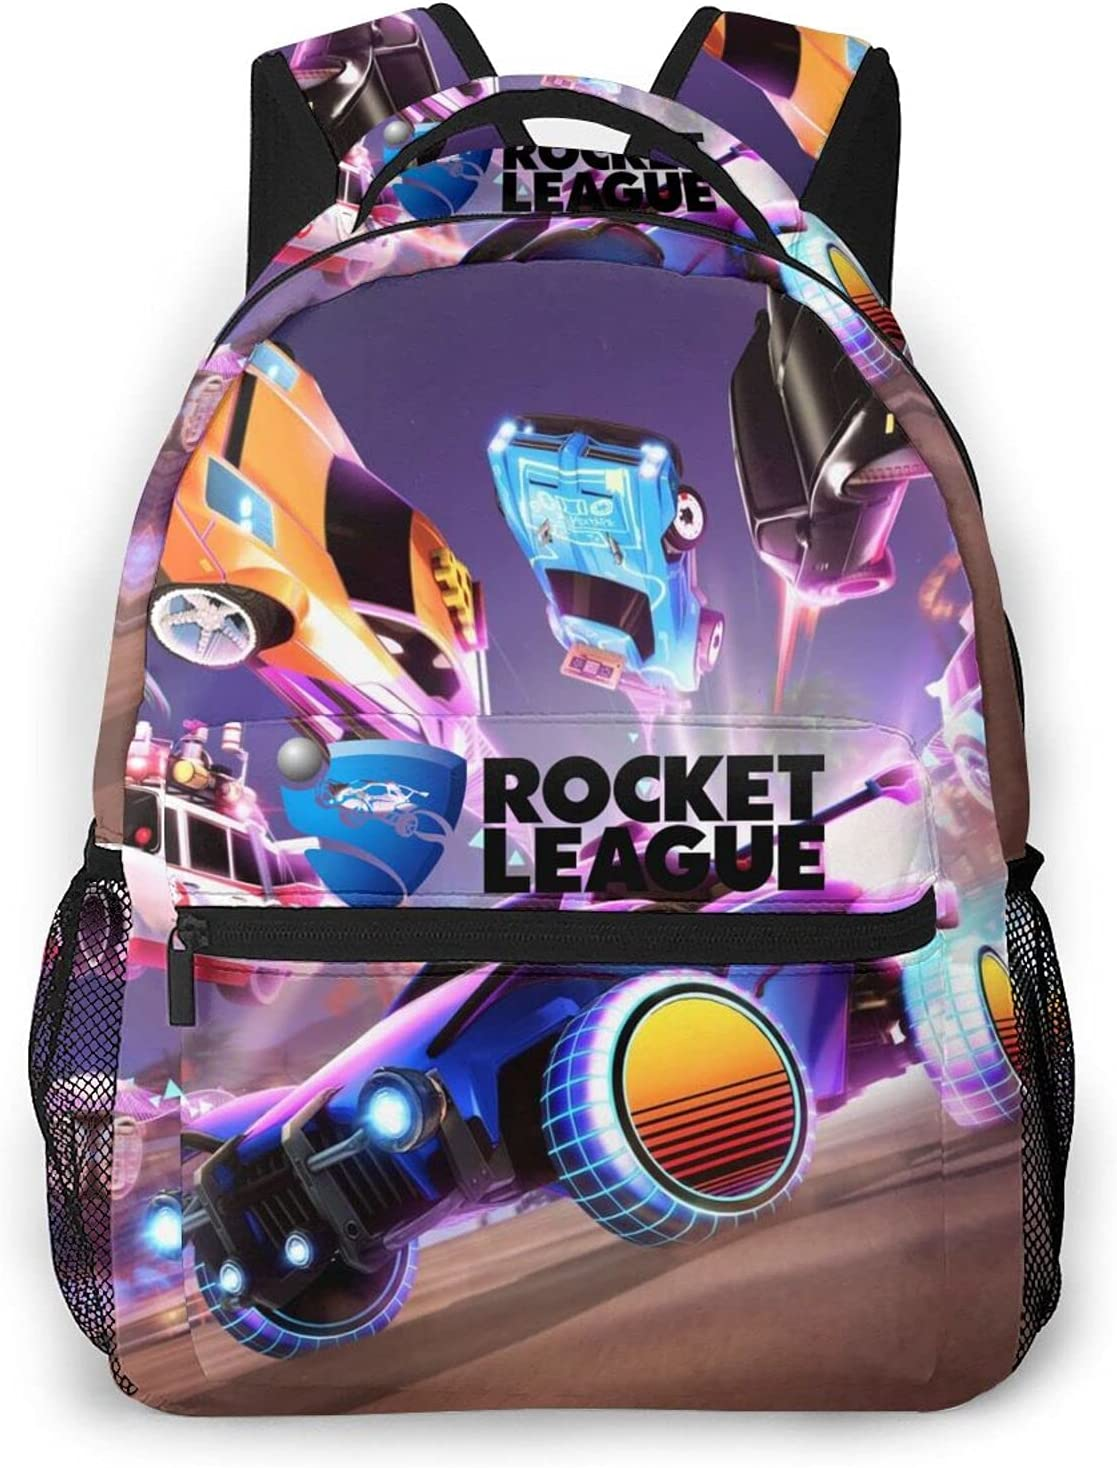 Ro-Cket Lea-GUE Max 77% OFF Backpack for Boys Lightweight Ranking TOP10 Durable Girls Scho